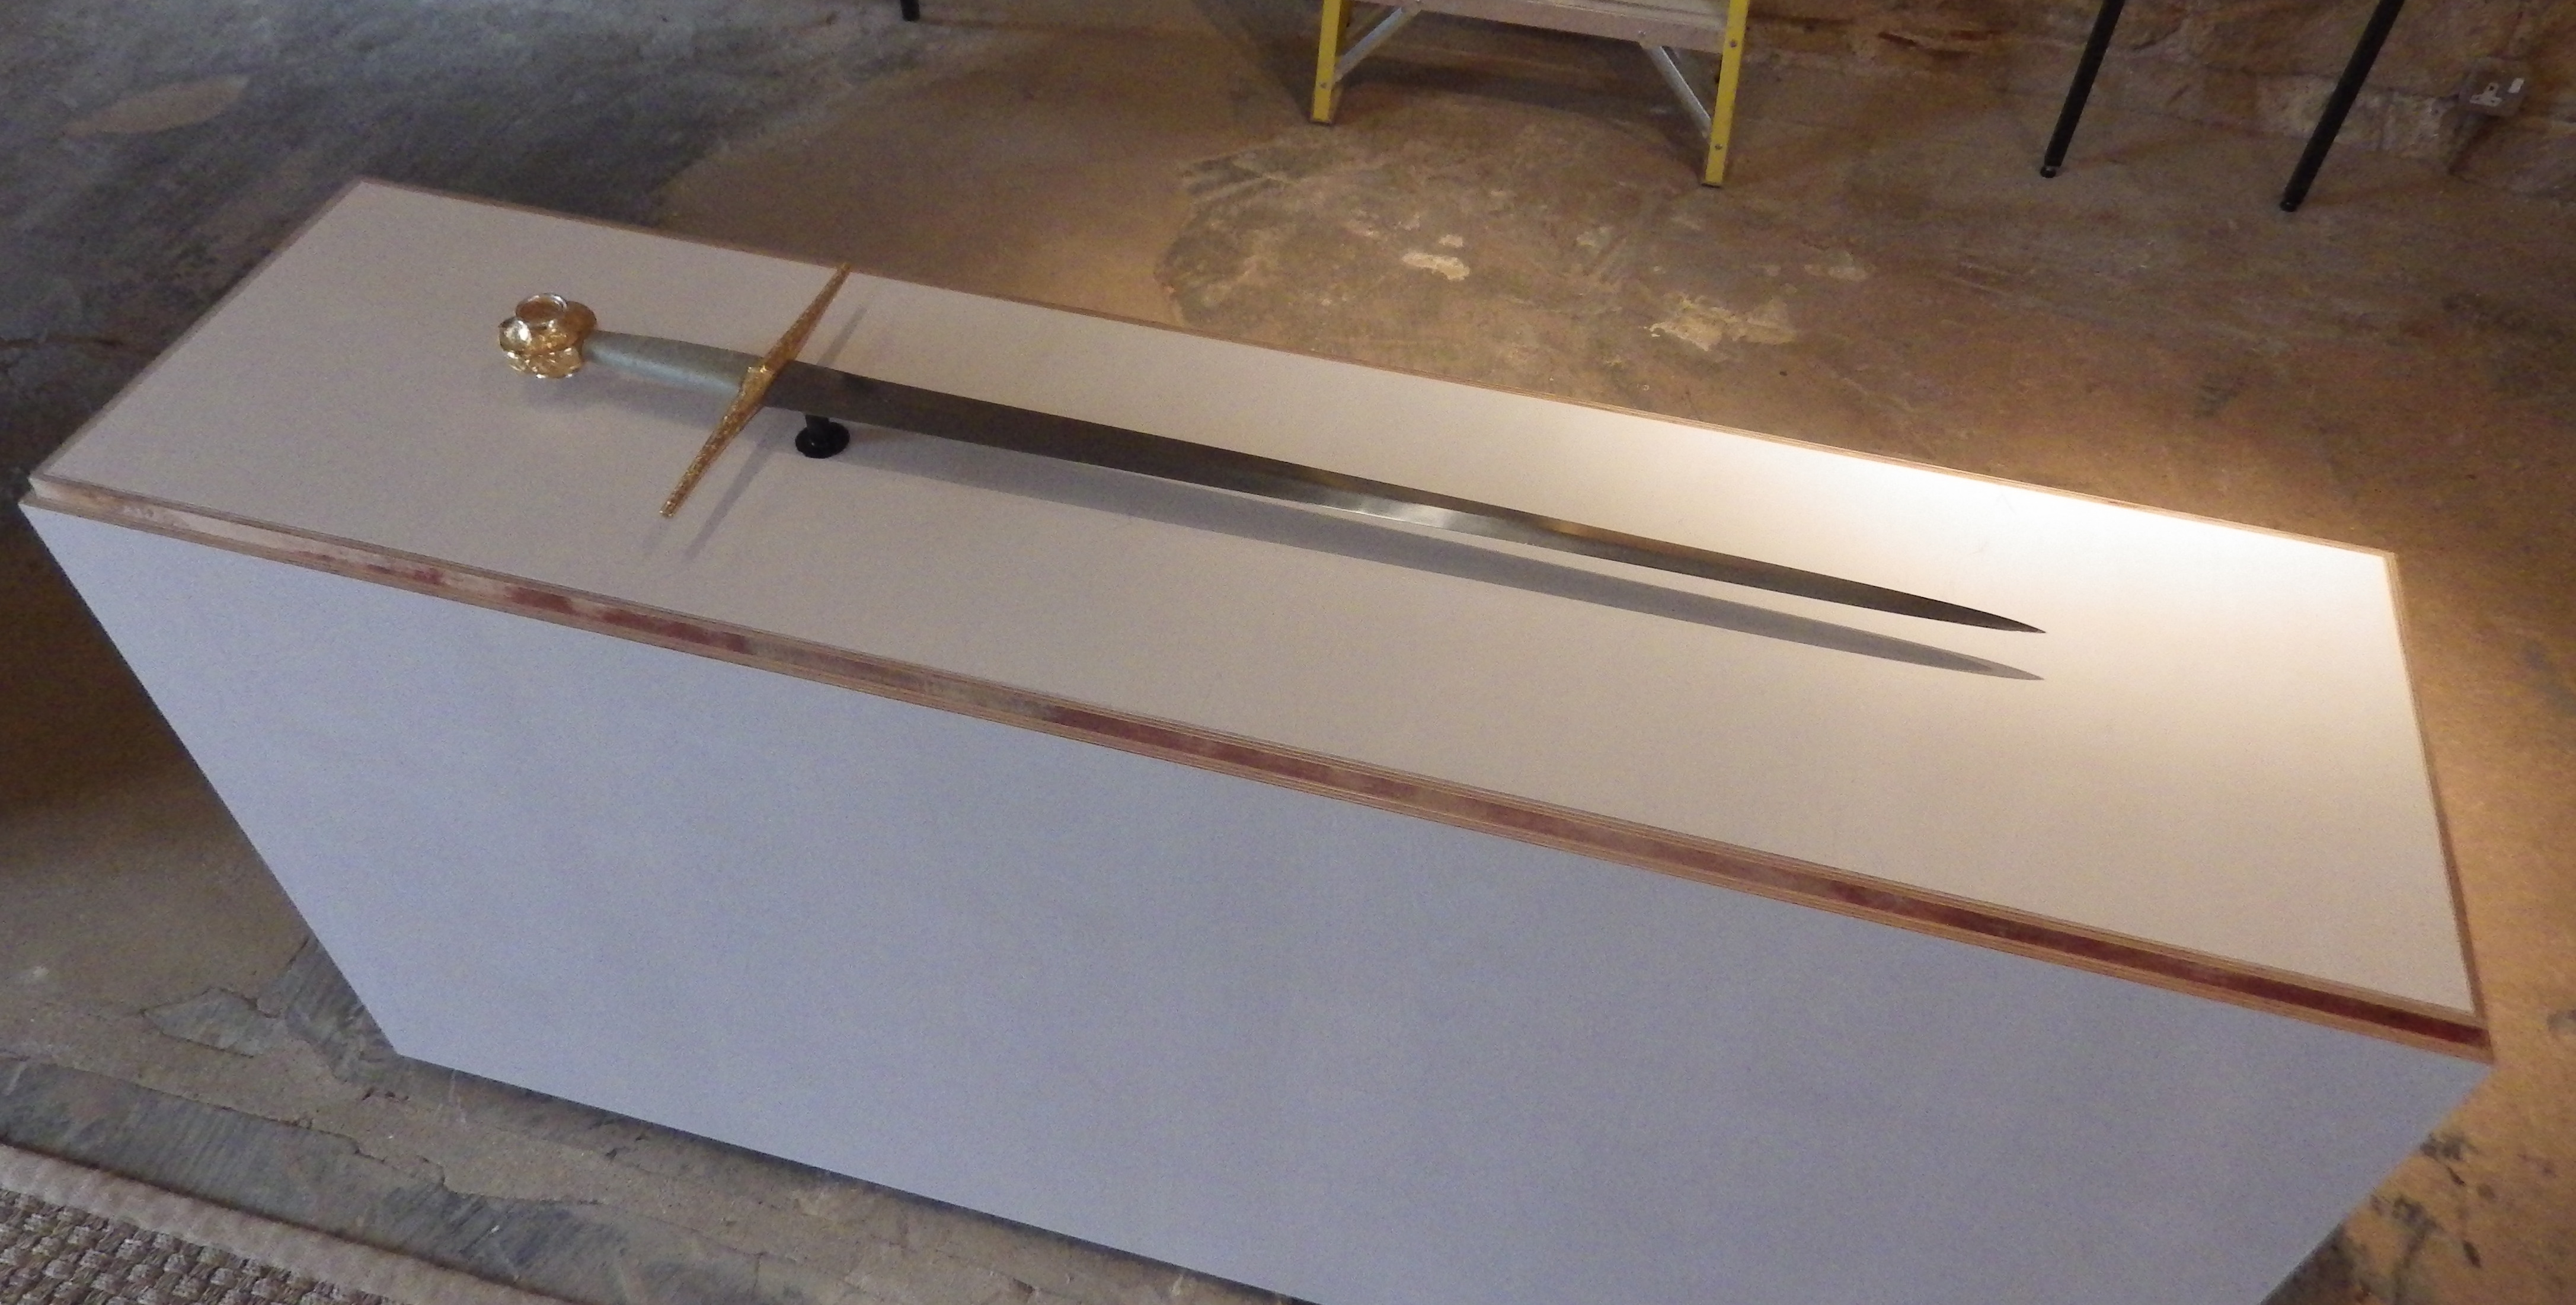 The finished sword, ready to go on display